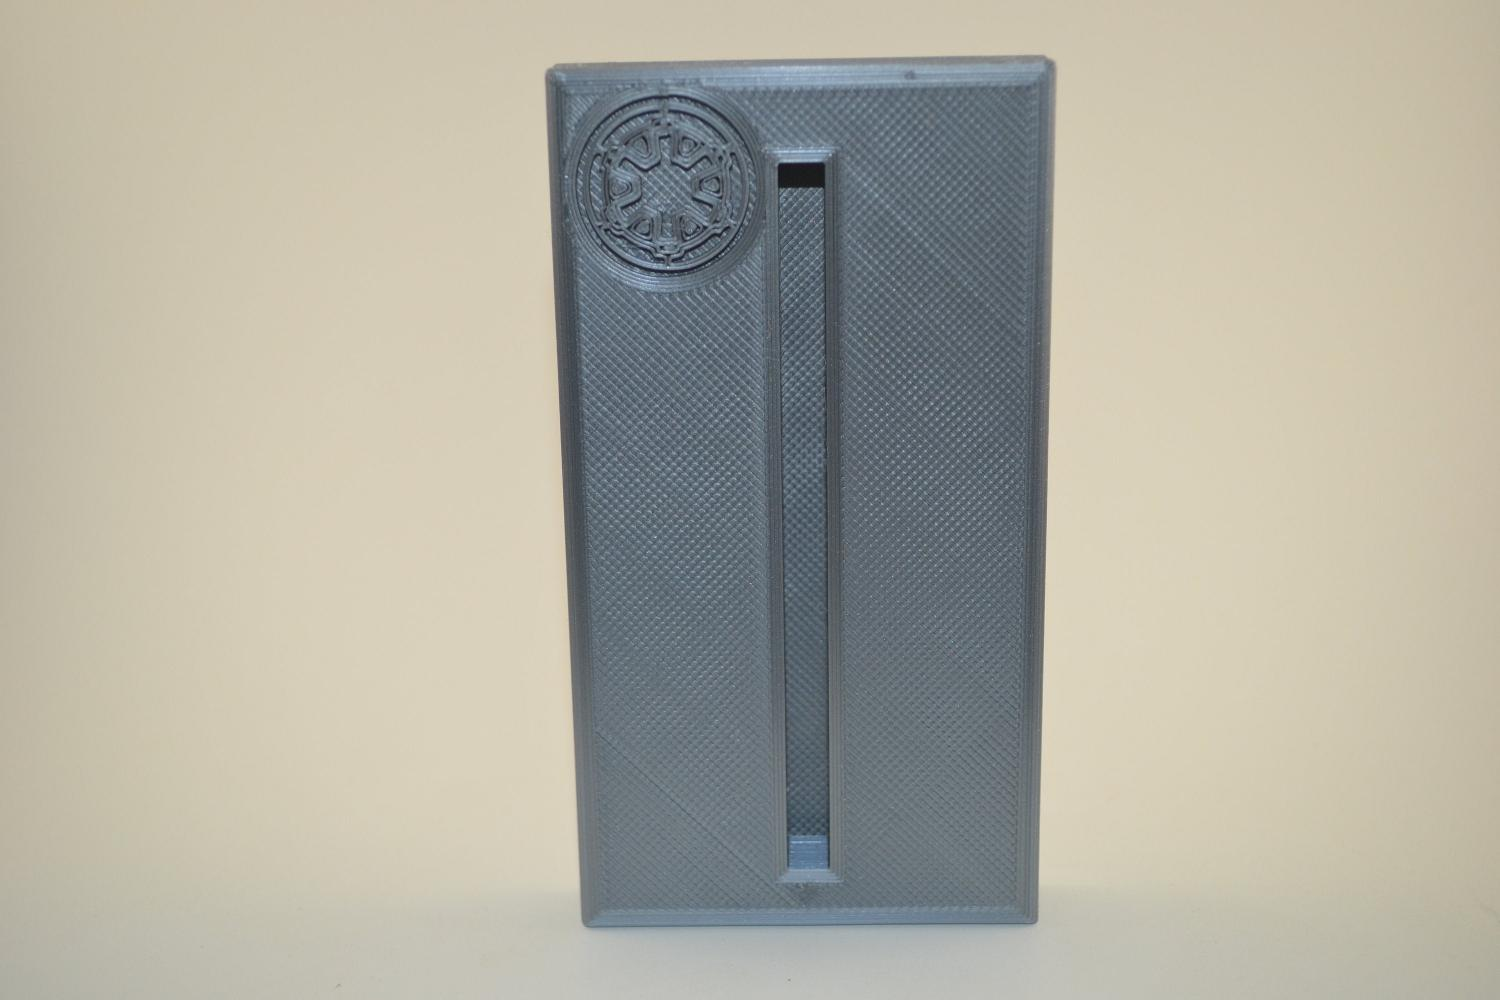 Star Wars Mandalorian Beskar Ingot business card holder